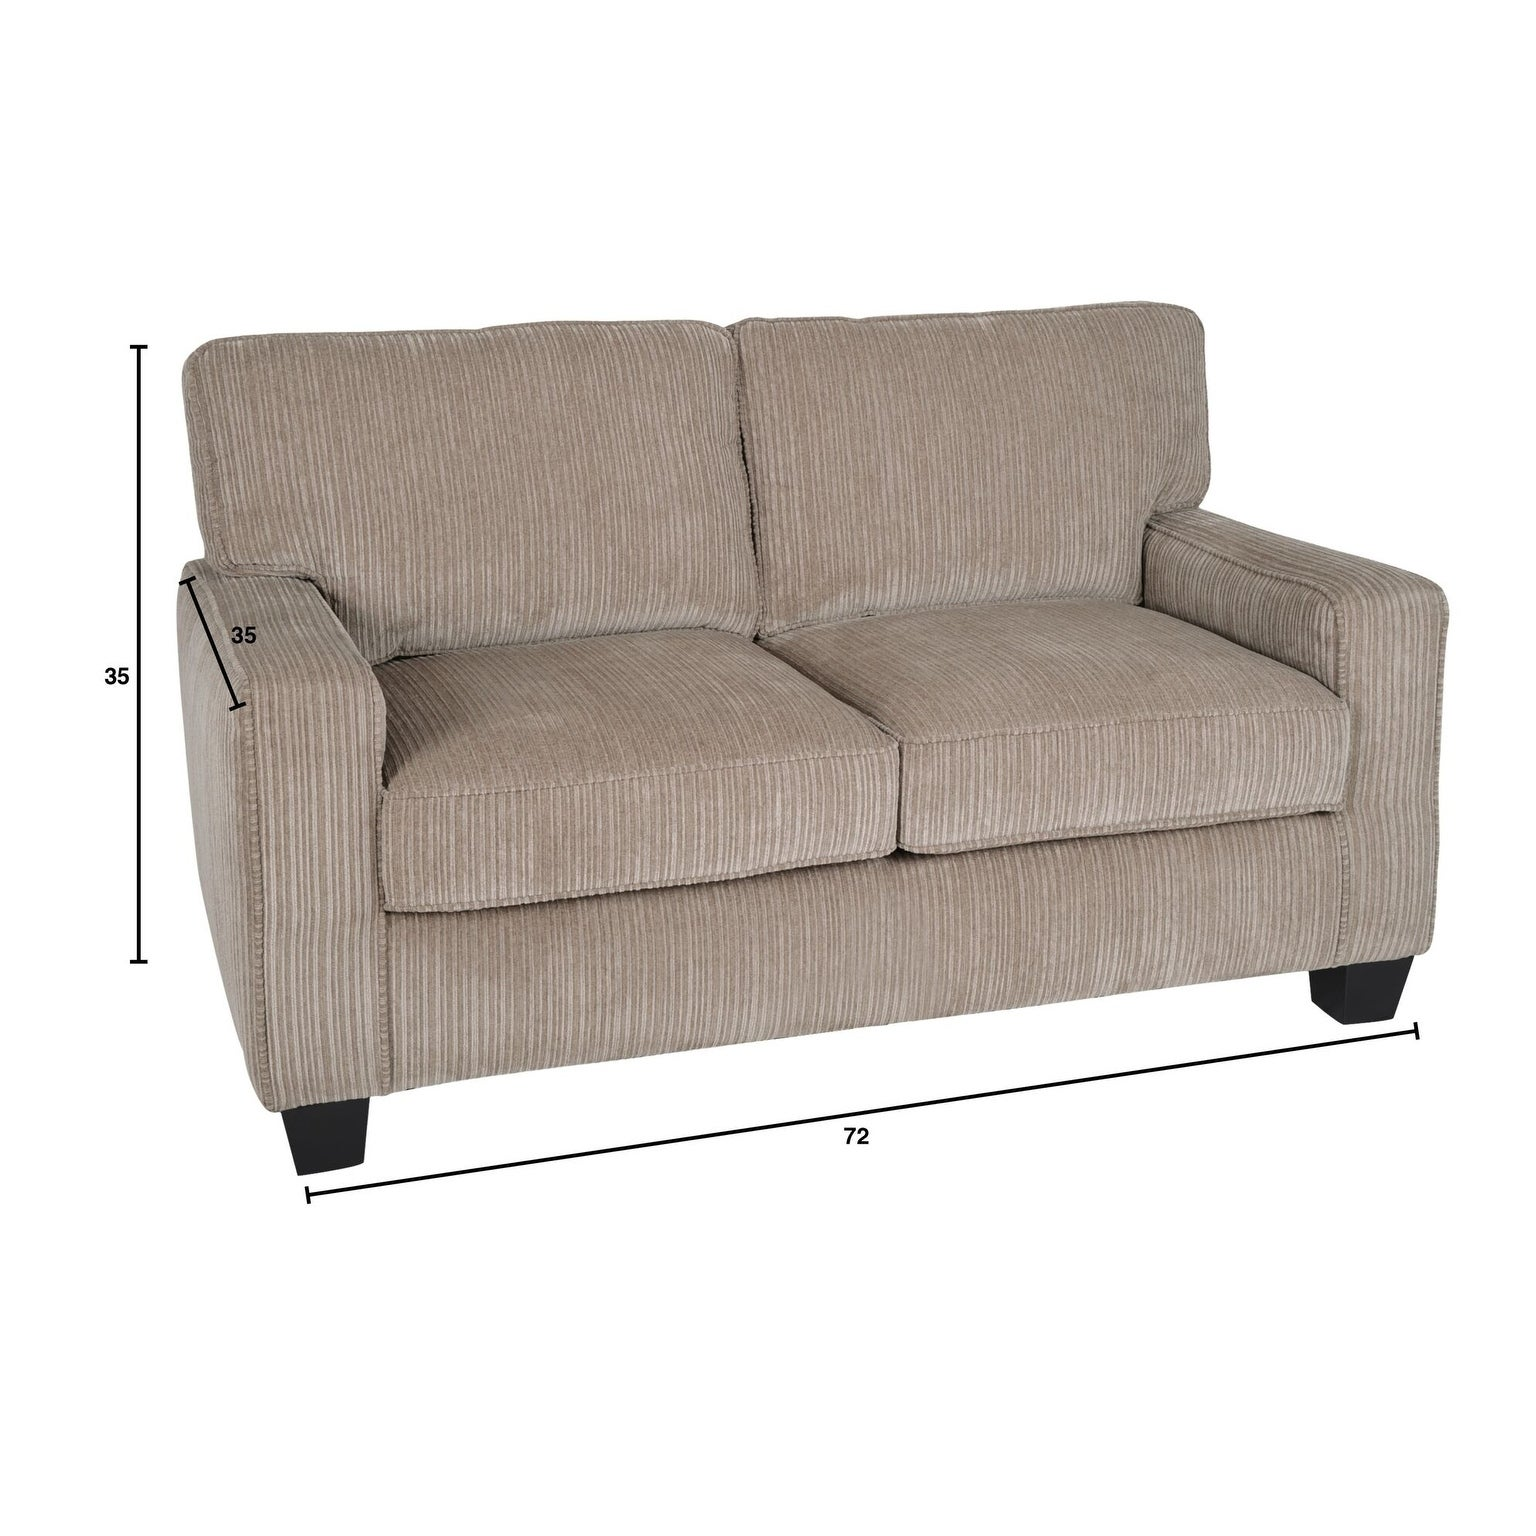 Shop Serta Palisades 73 Inch Sofa Free Shipping Today Overstock